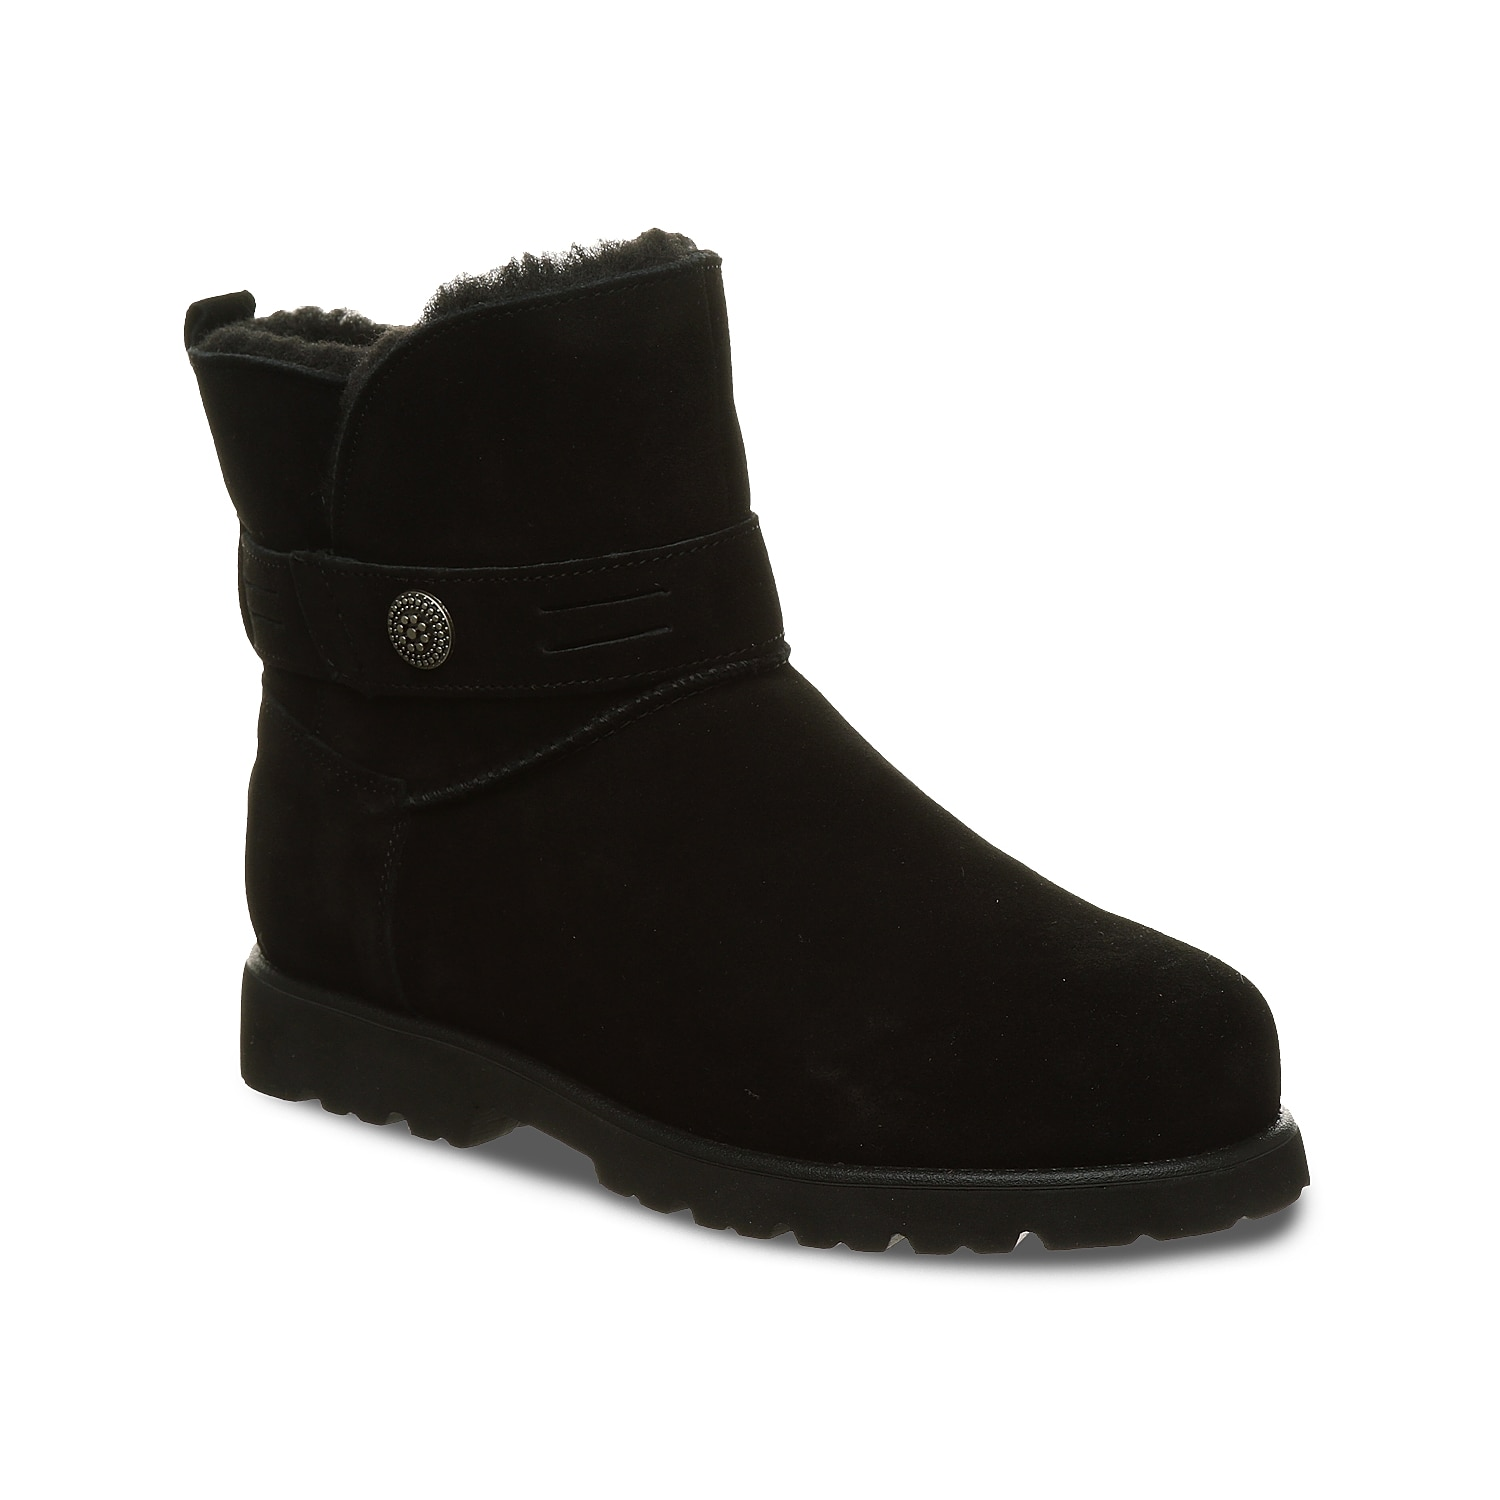 Brave the chilly season in the Wellston snow boot by Bearpaw. Made of suede, this ankle boot boasts a decorative wraparound strap and is equipped with NeverWet® technology to keep the water out.Click here for Boot Measuring Guide.